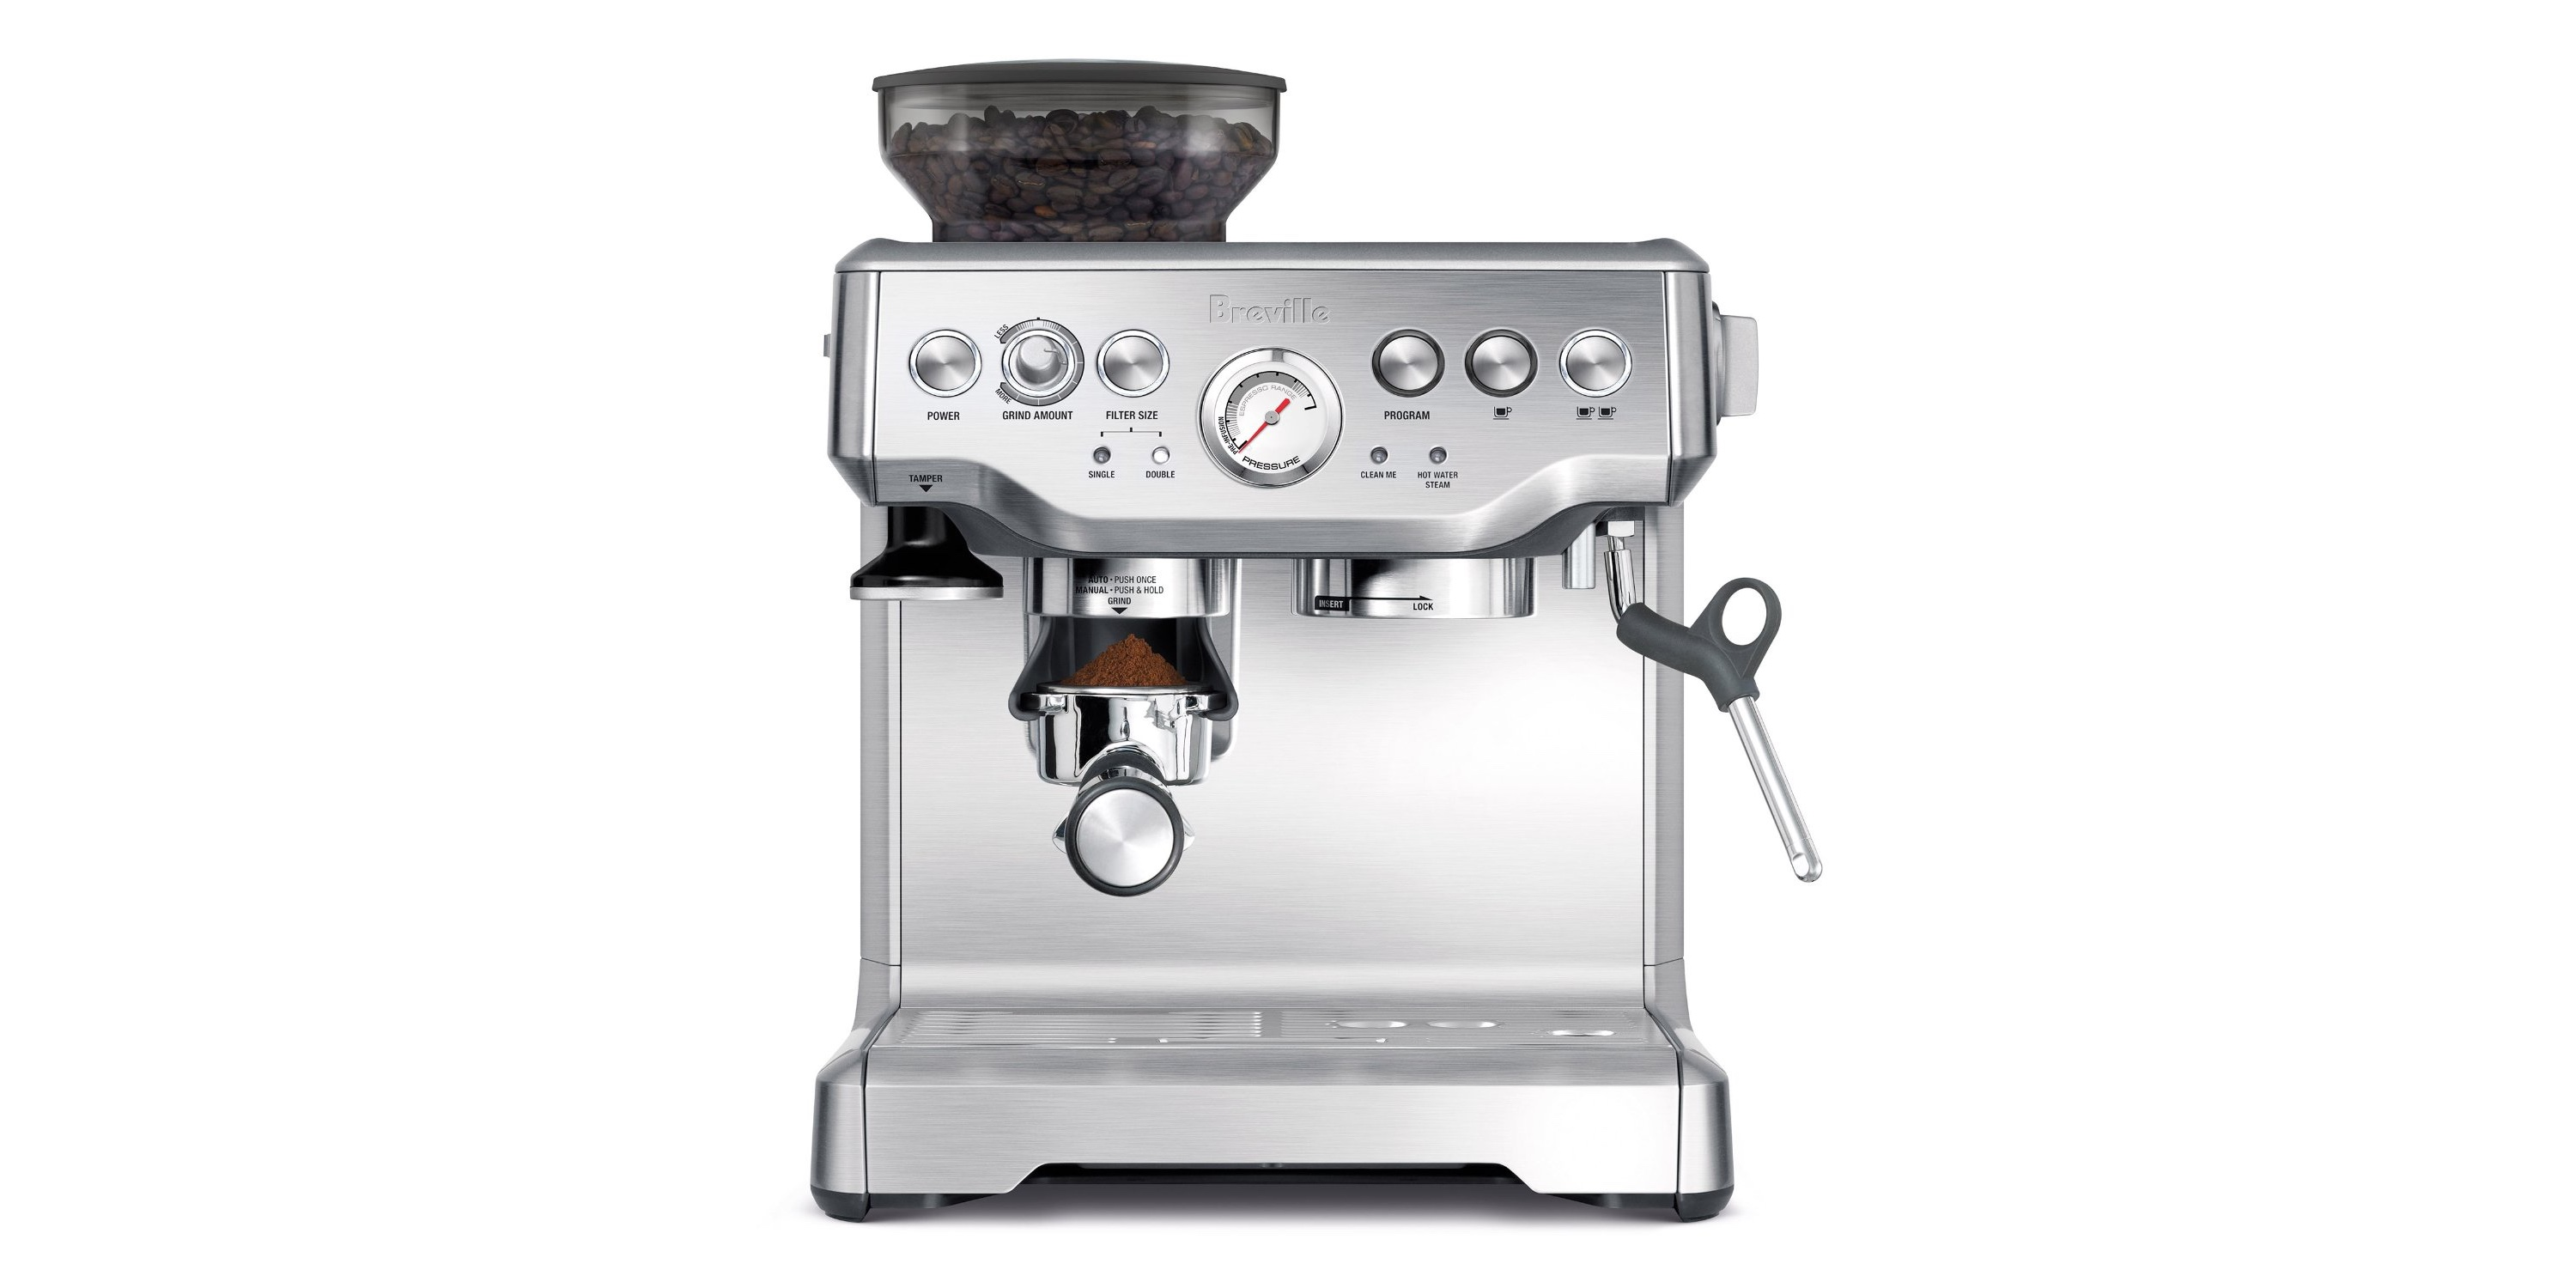 Amazon's best-selling Breville Barista Express Espresso Machine is at its lowest price ever: $480 shipped